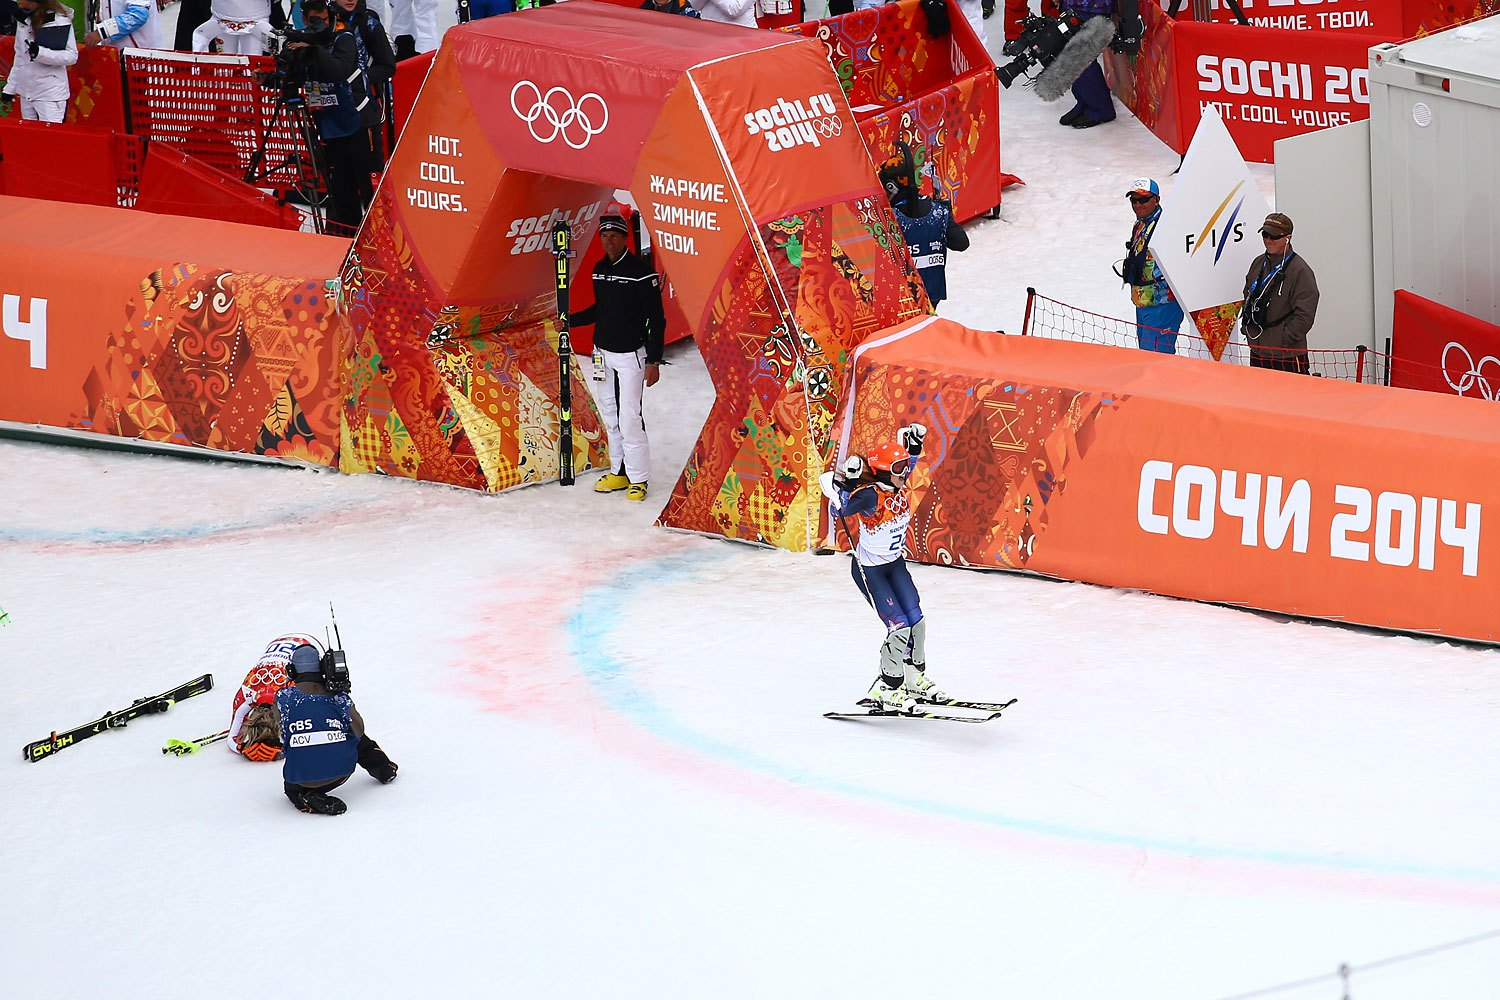 Gold medalist Maria Hoefl-Riesch of Germany reacts as Julia Mancuso of the United States wins the bronze medal during the Alpine Skiing Women's Super Combined Slalom on day 3 of the Sochi 2014 Winter Olympics at Rosa Khutor Alpine Center on Febr. 10, 2014 in Sochi.